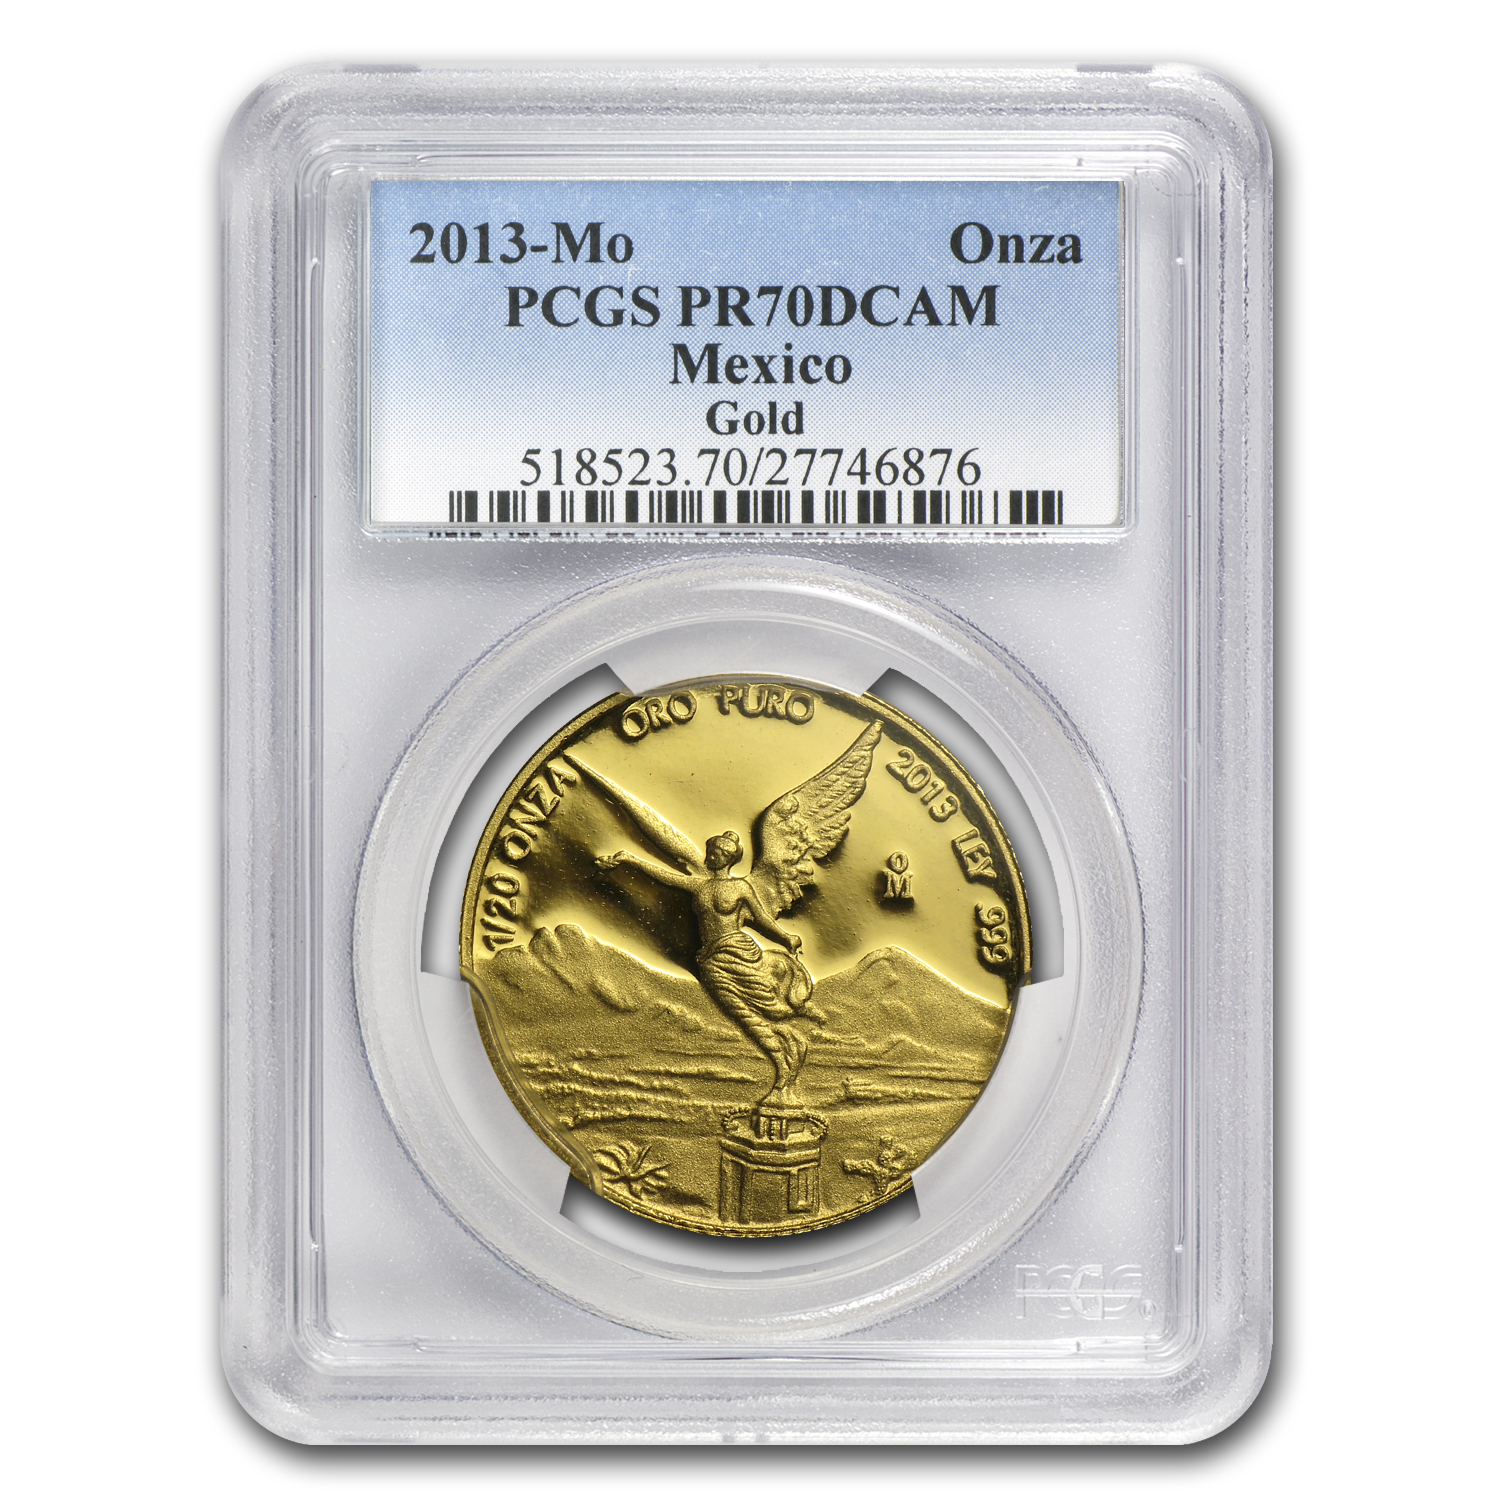 2013 Mexico 5-Coin Gold Libertad Proof Set PR-70 PCGS (1.9 oz)